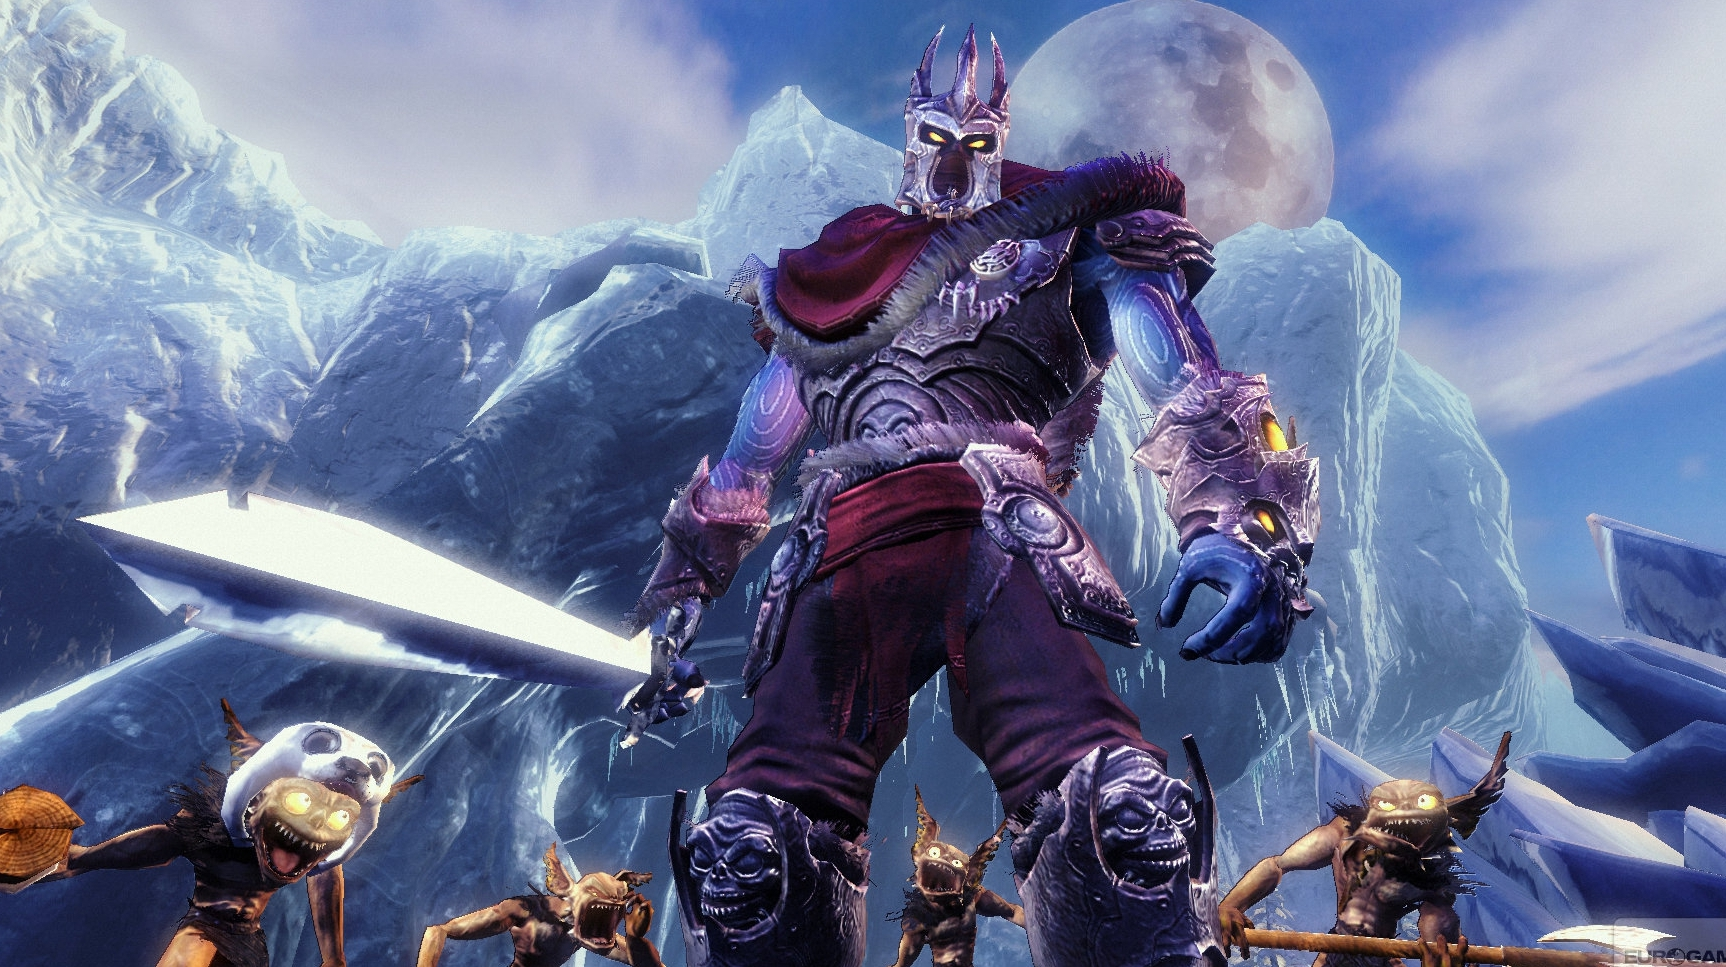 further Borderlands Game Of The Year Enhanced Pc Tech Review further Sony Playstation X besides Bakugan Dotc Ds together with B D B E Dbcaf E A Df. on xbox 360 core back